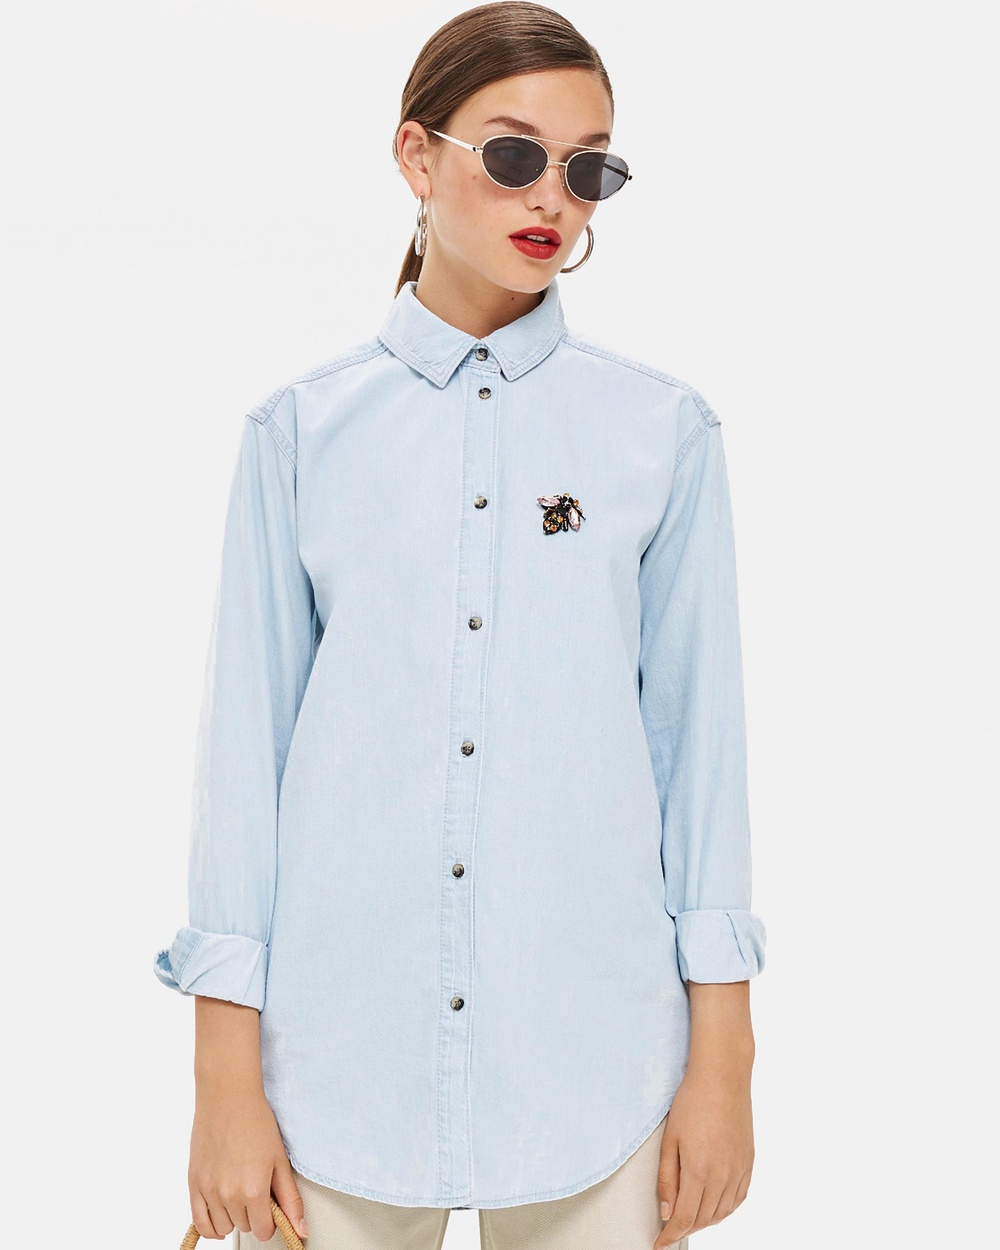 TOPSHOP Denim Bee Embellished Shirt Tops Light Denim Denim Bee Embellished Shirt